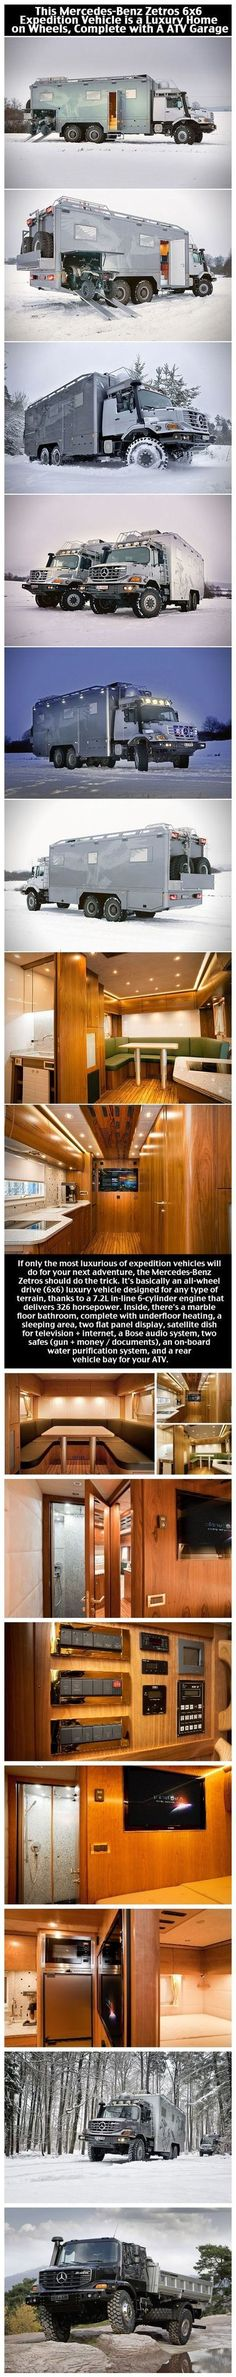 Mercedes Benz Zetros Is A Luxury Home On Wheels With ATV Garage home travel camping mercedes luxury architecture home ideas mercedes benz wealth architecture ideas travelling road trips adventure travel home on wheels Garage Pictures, Rv Homes, Luxury Rv, Bug Out Vehicle, Off Road Camper, Camper Caravan, Road Trip Adventure, Expedition Vehicle, Camping Car